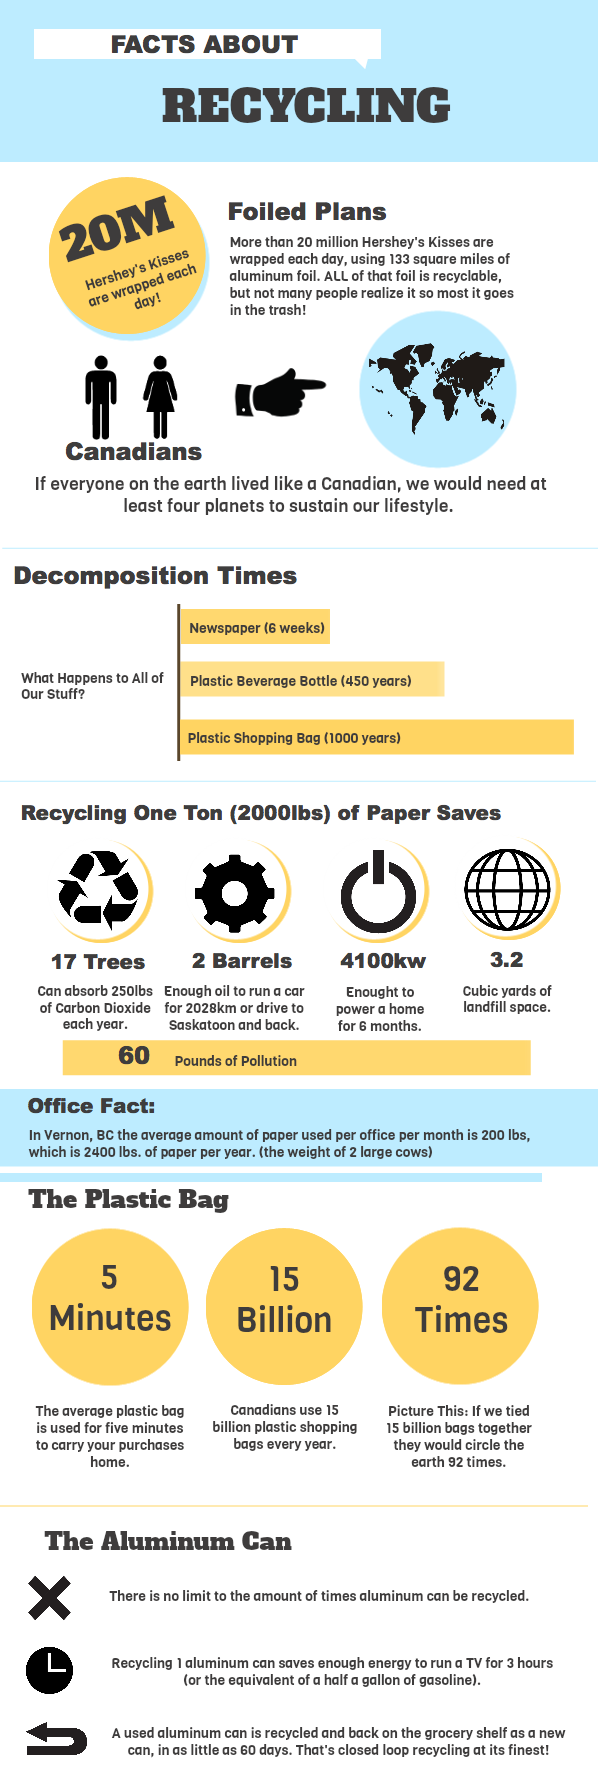 Facts_About_Recycling_Infographic